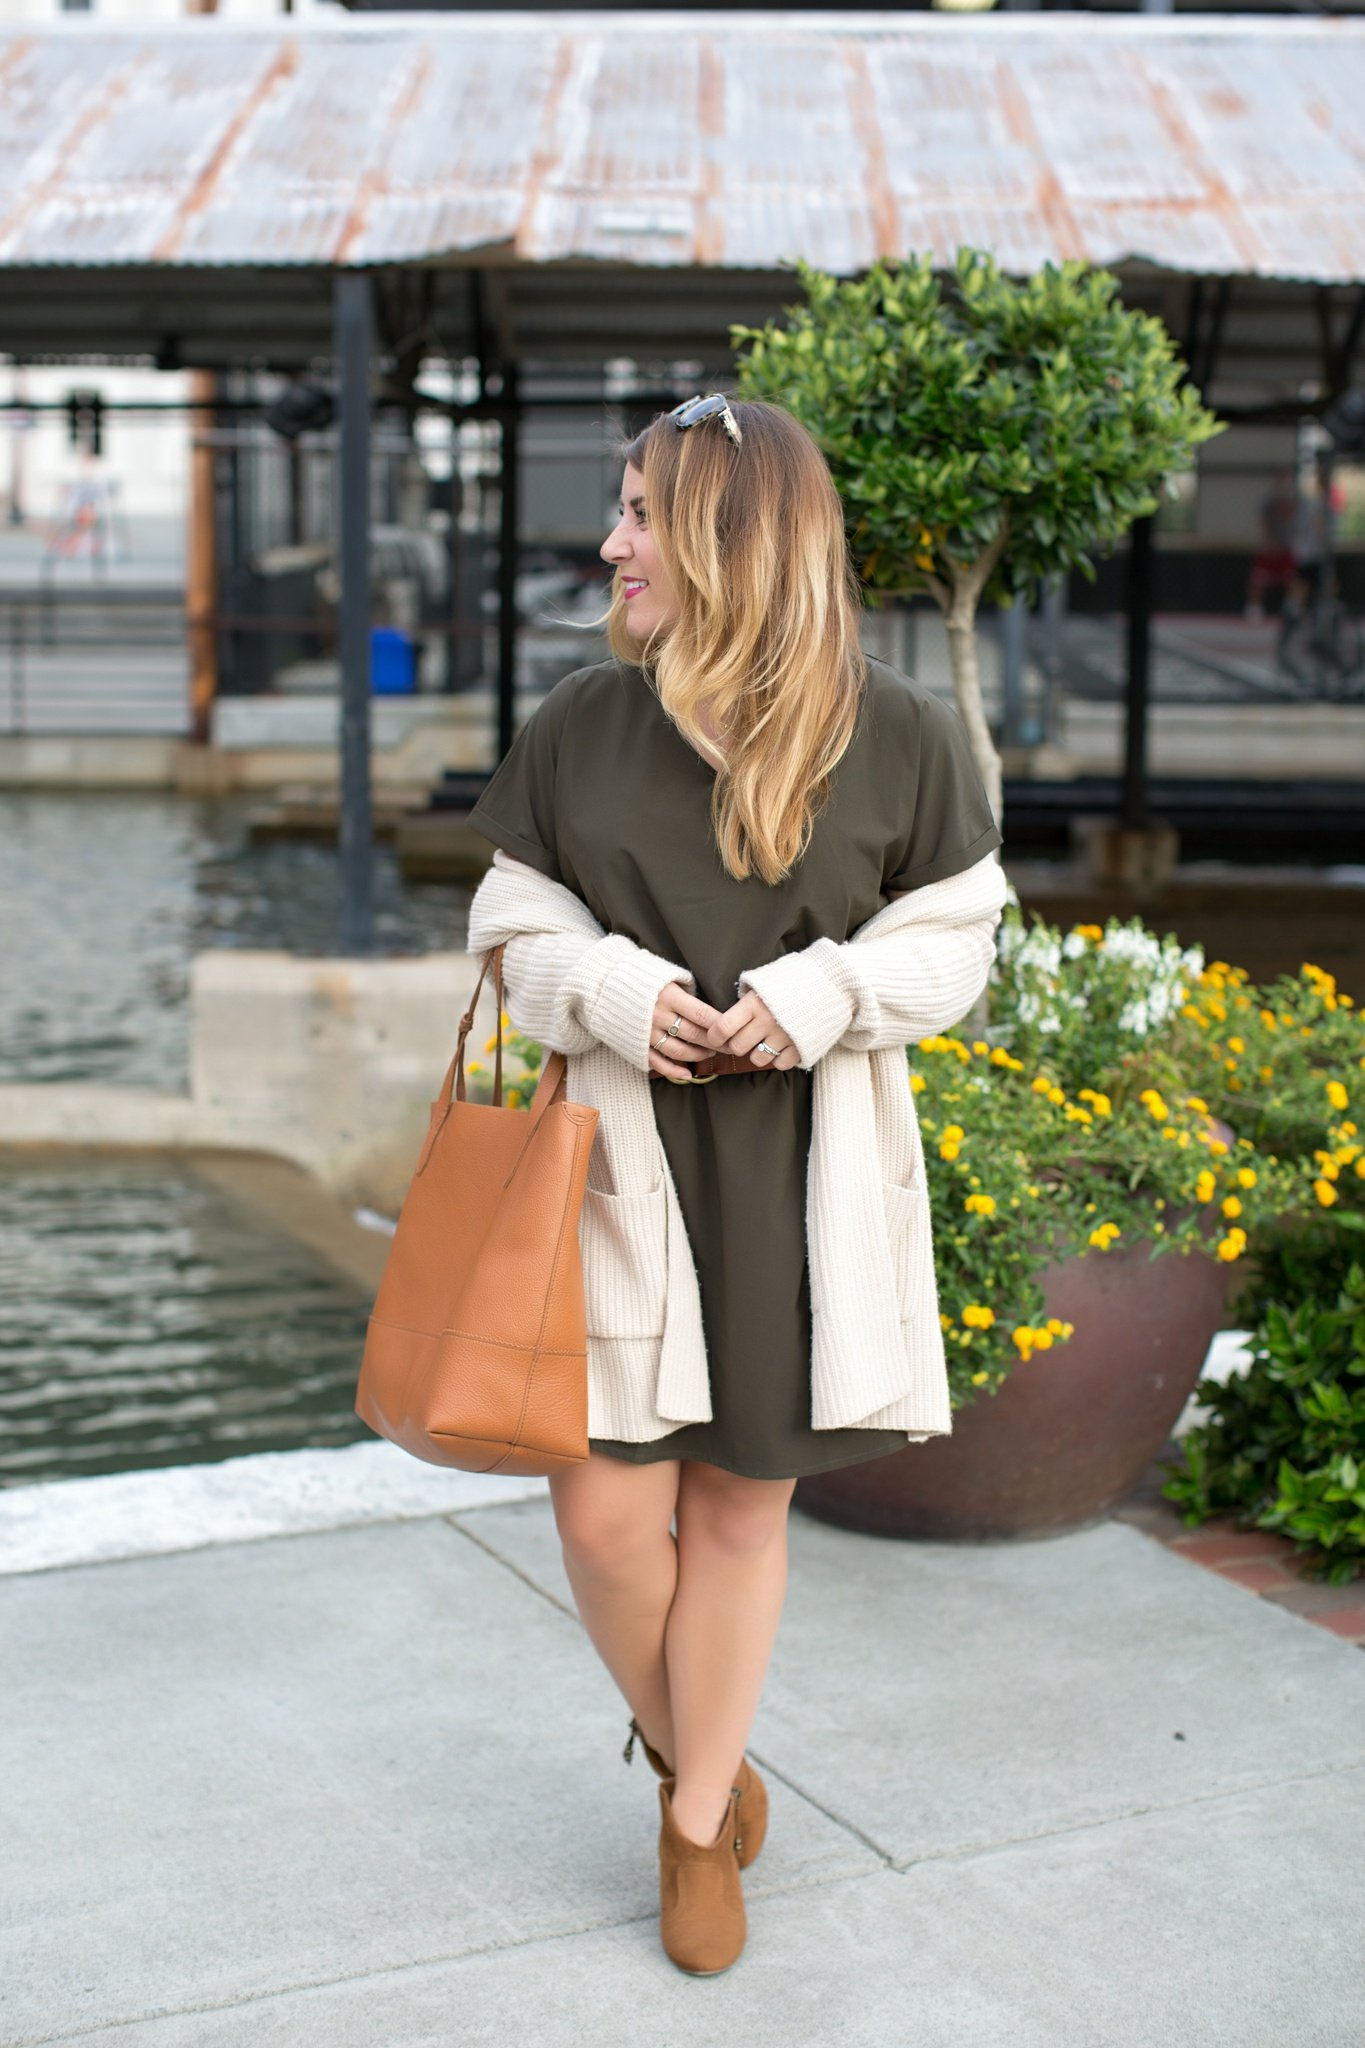 View More: http://em-grey.pass.us/amy-september-23rd-2015-fashion-bloggers-day-out-em-grey-photography-raleigh-nc